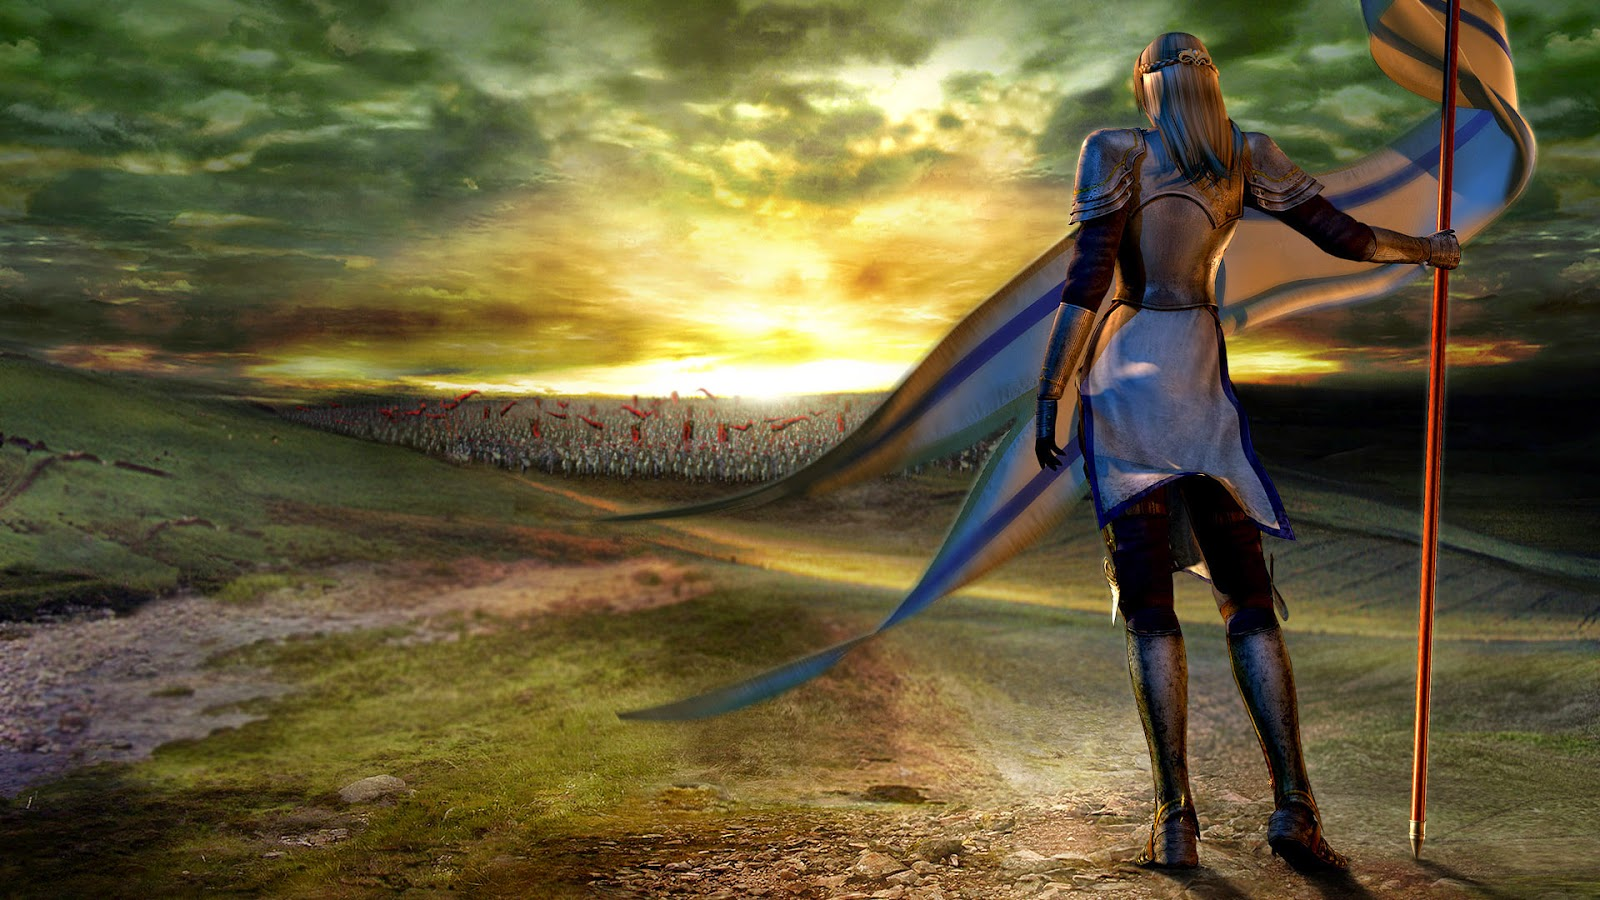 Warrior Women With Army 3D Wallpaper